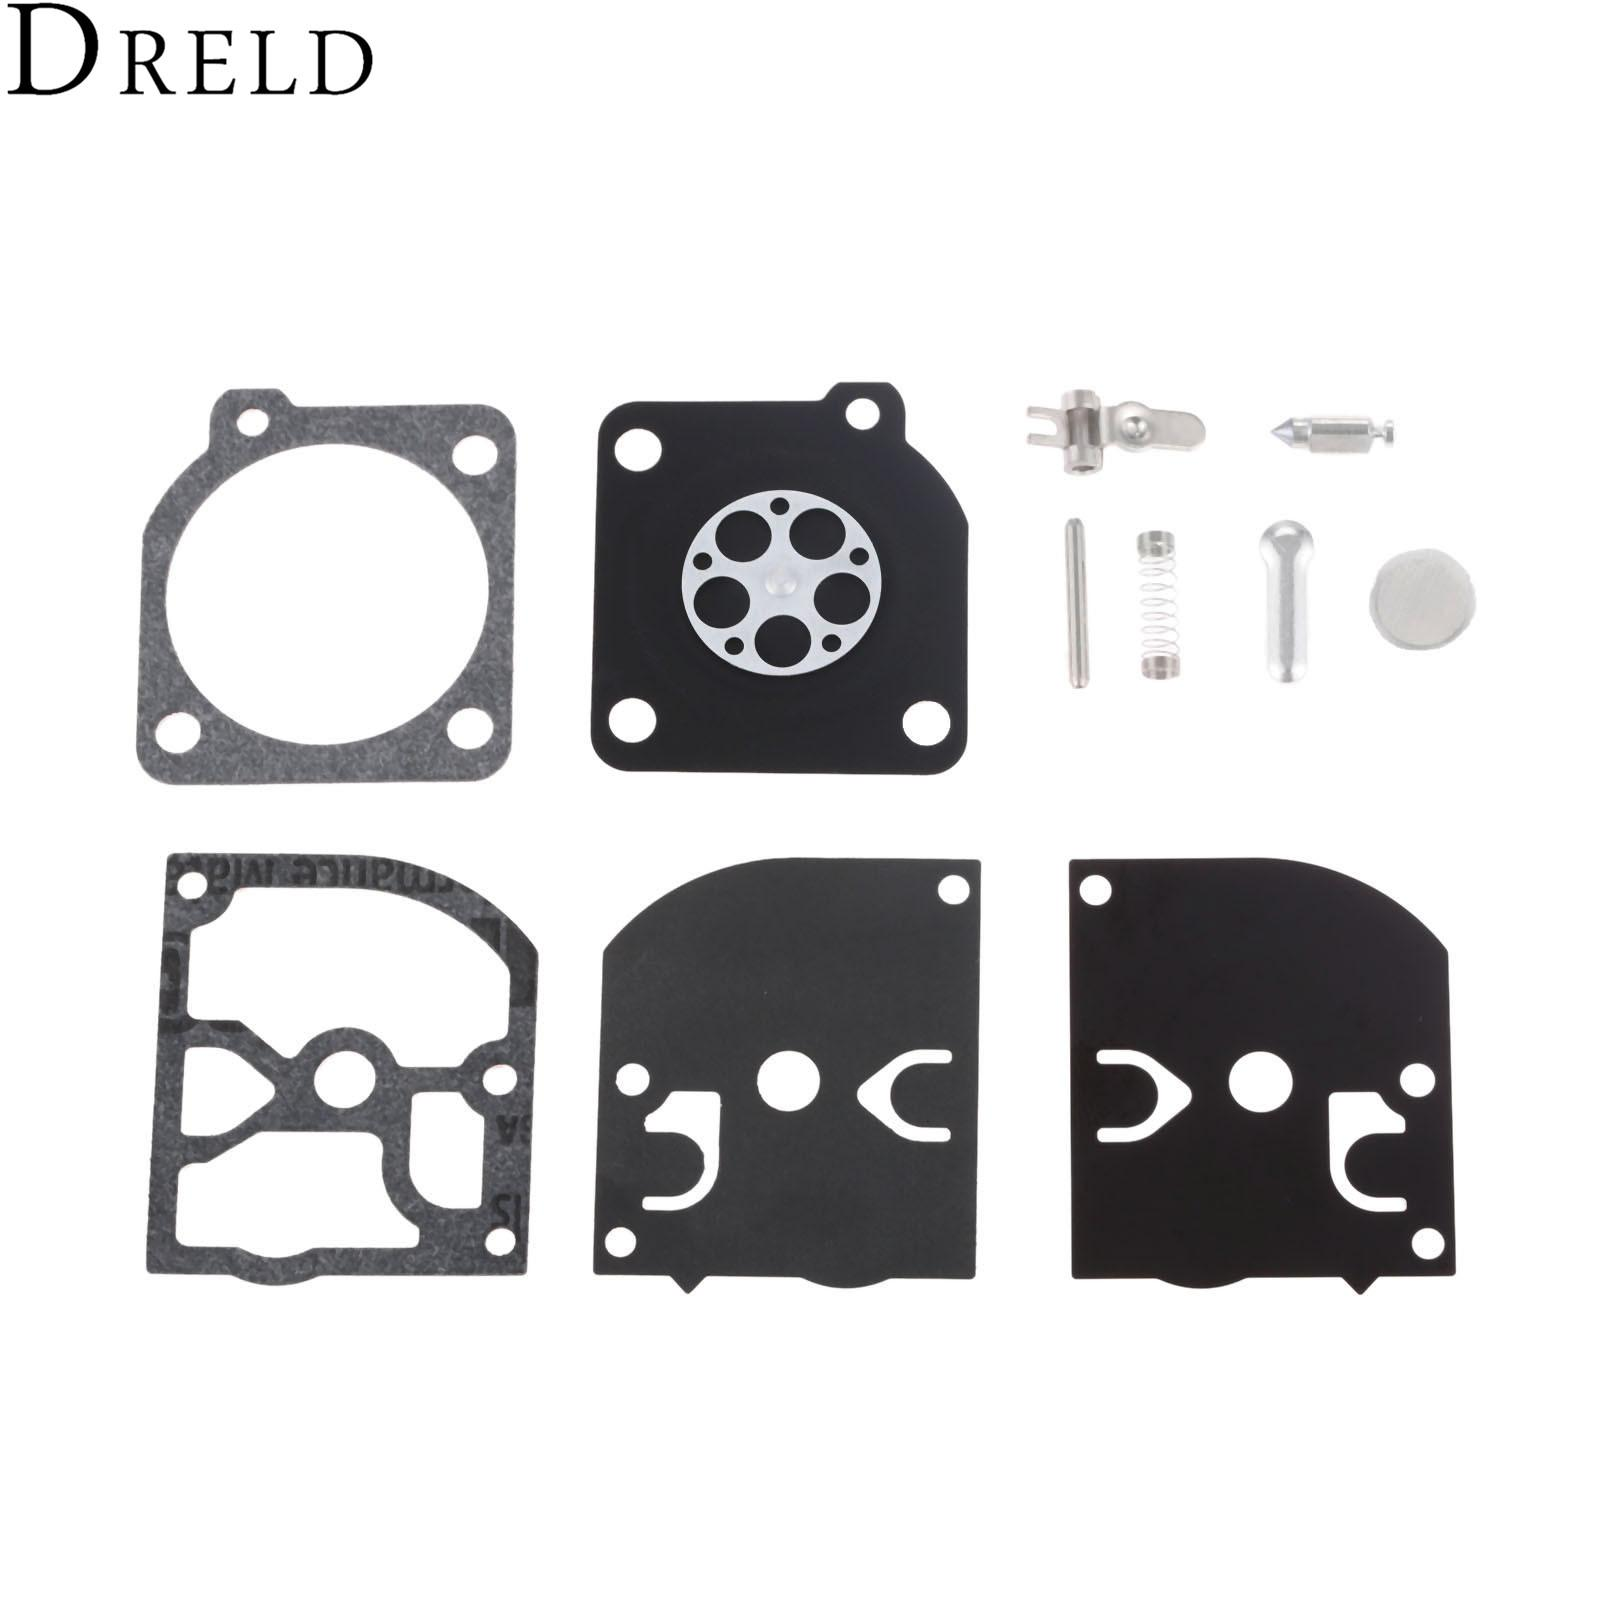 hight resolution of 2019 cheap tool parts dreld carburetor carb repair kit for zama rb 39 c1q m27 m28 14 19 h27 h32 carb poulan weedeater mcculloch chainsaws from toy1234